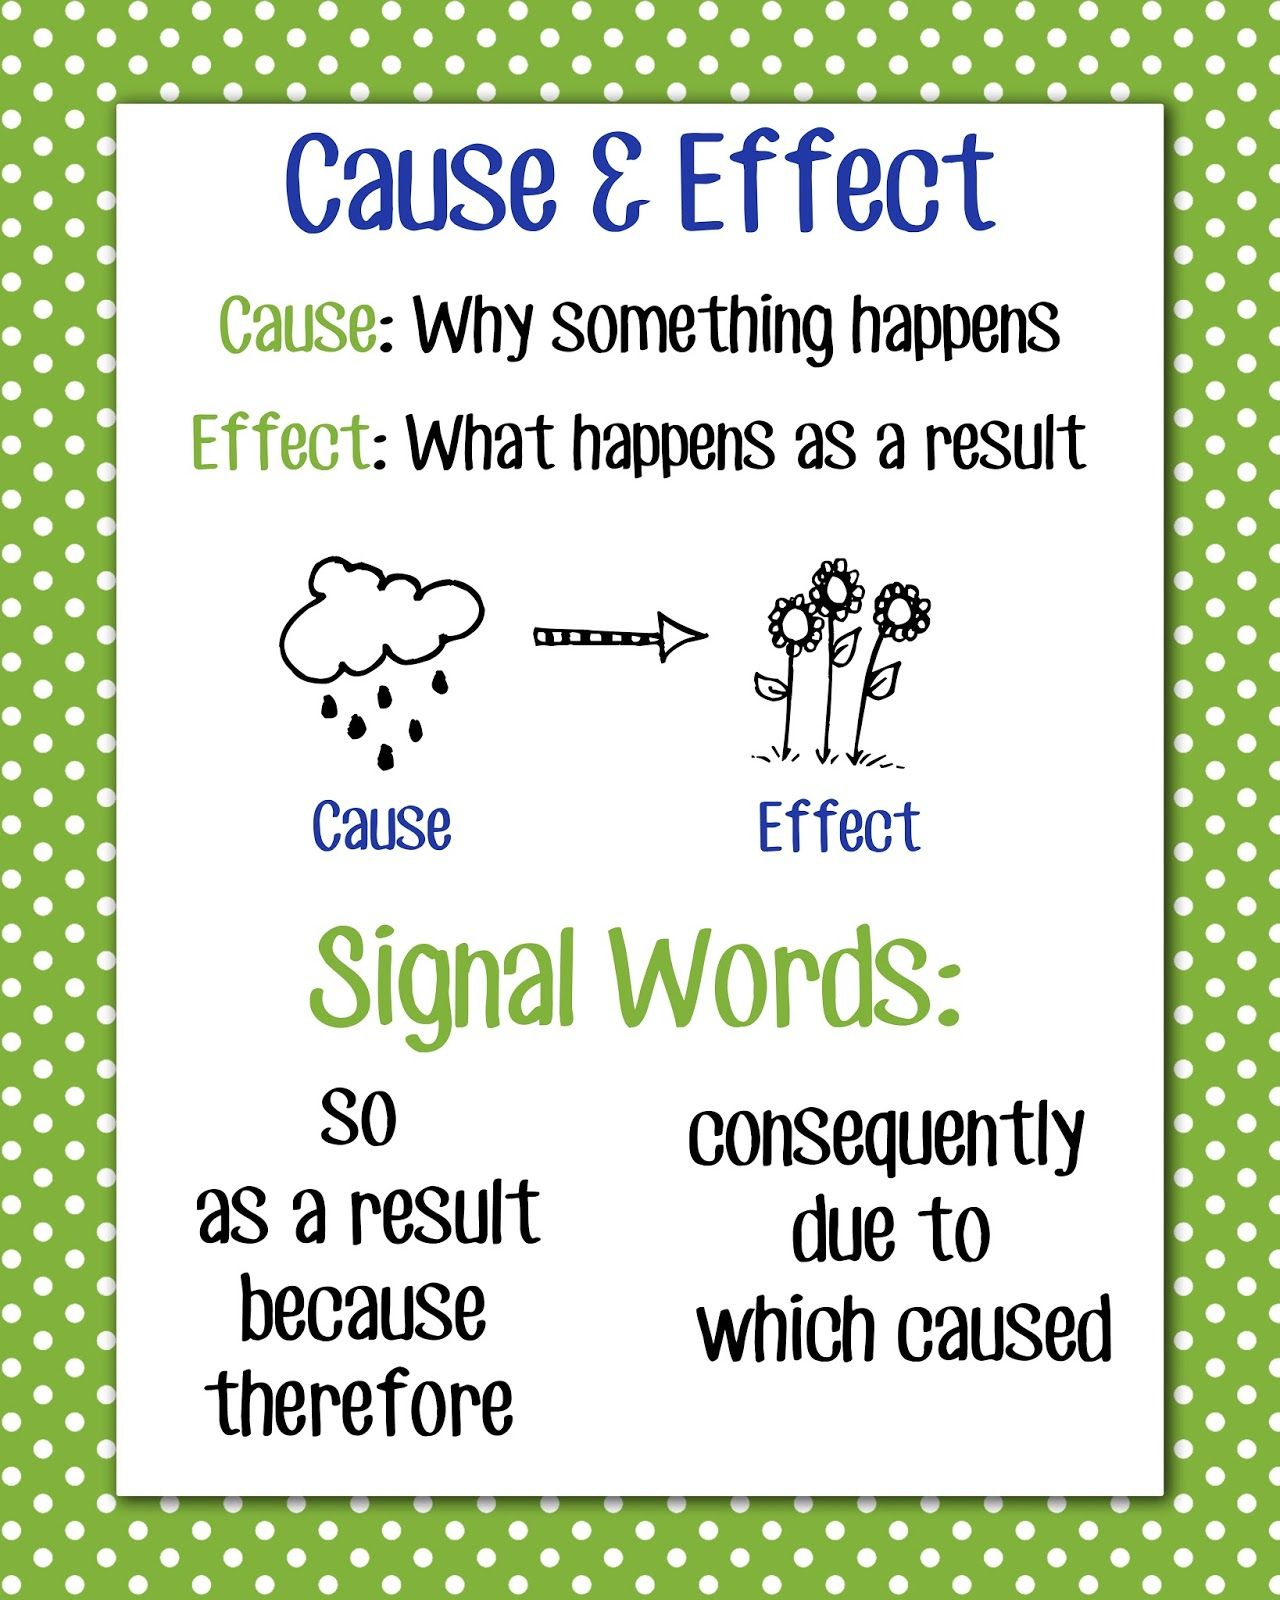 causes and effects of the english language essay A cause-and-effect paragraph or essay can be organized in various ways for instance, causes and/or effects can be arranged in either chronological order or reverse chronological order alternatively, points can be presented in terms of emphasis, from least important to most important, or vice versa.